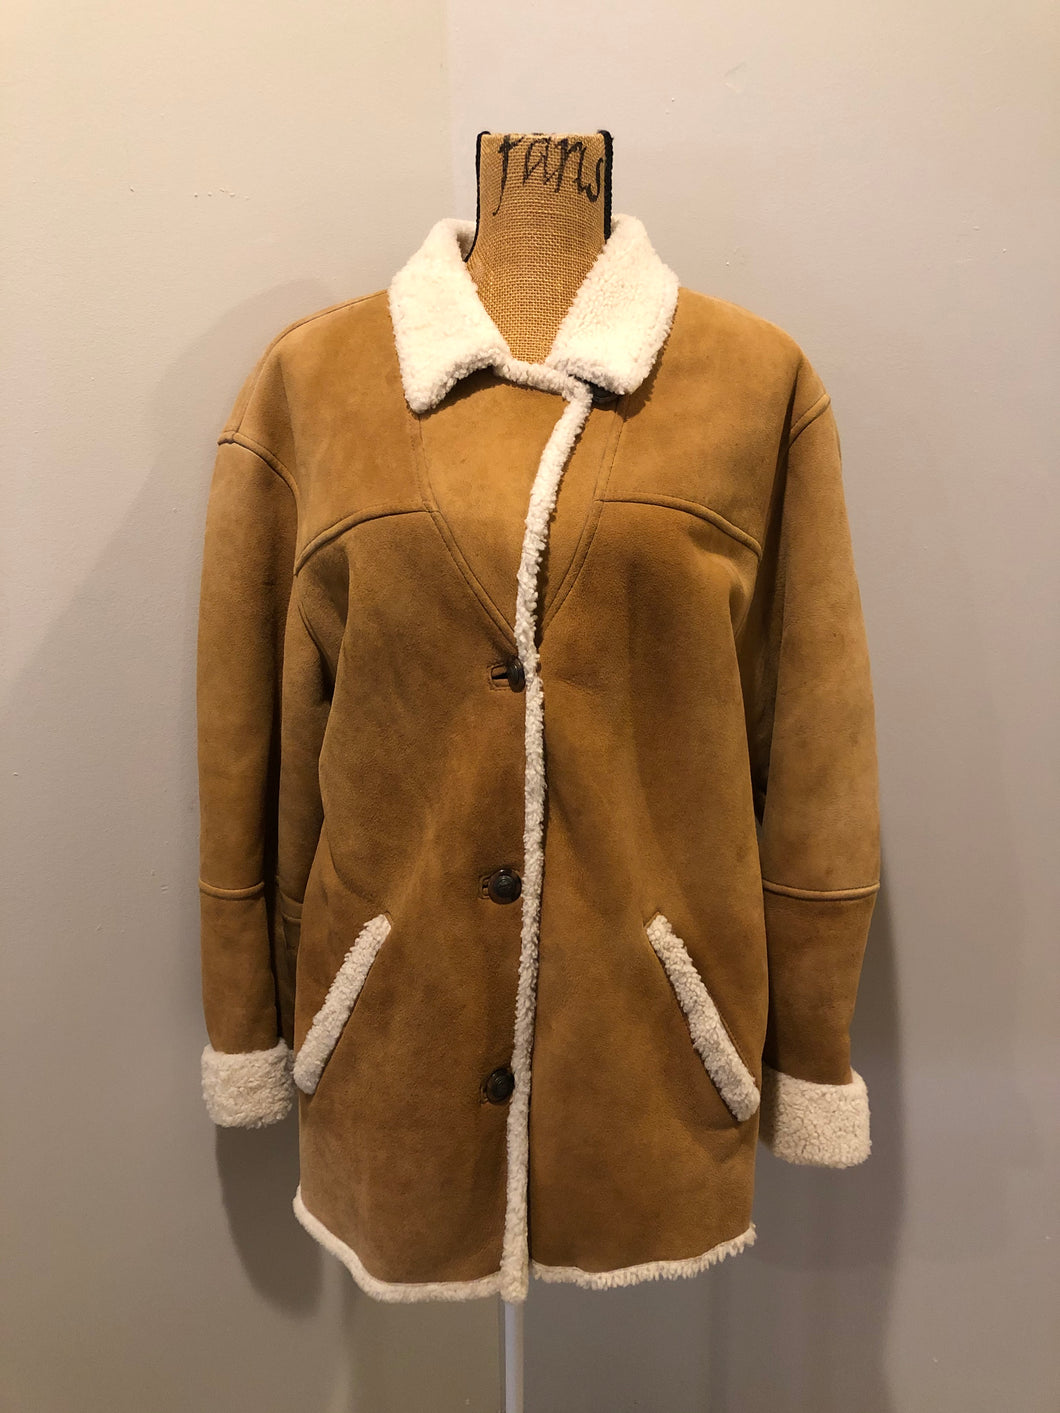 Timberland tan suede lambskin coat with shearling trim and lining, button closures and slash pockets. Coat is water resistant. Size medium.